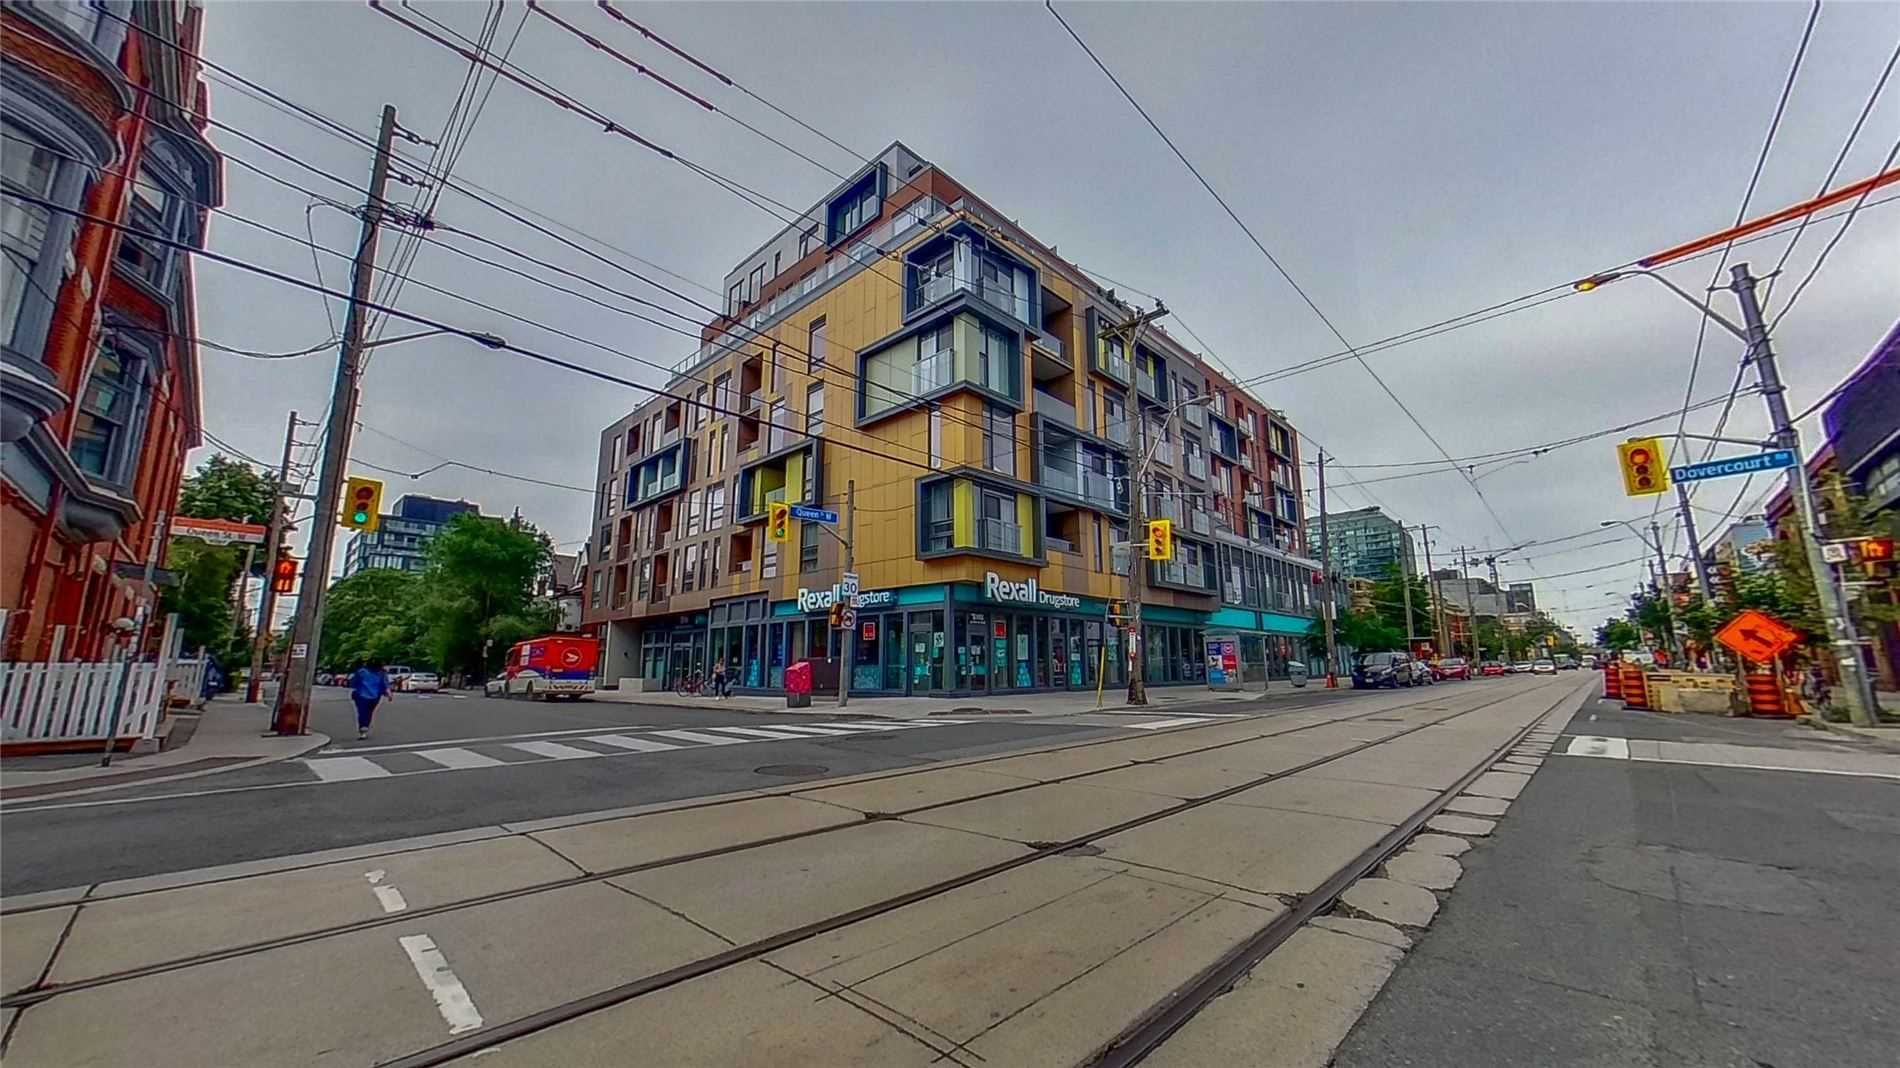 106 Dovercourt Rd, unit 217 for sale in Little Portugal - image #2